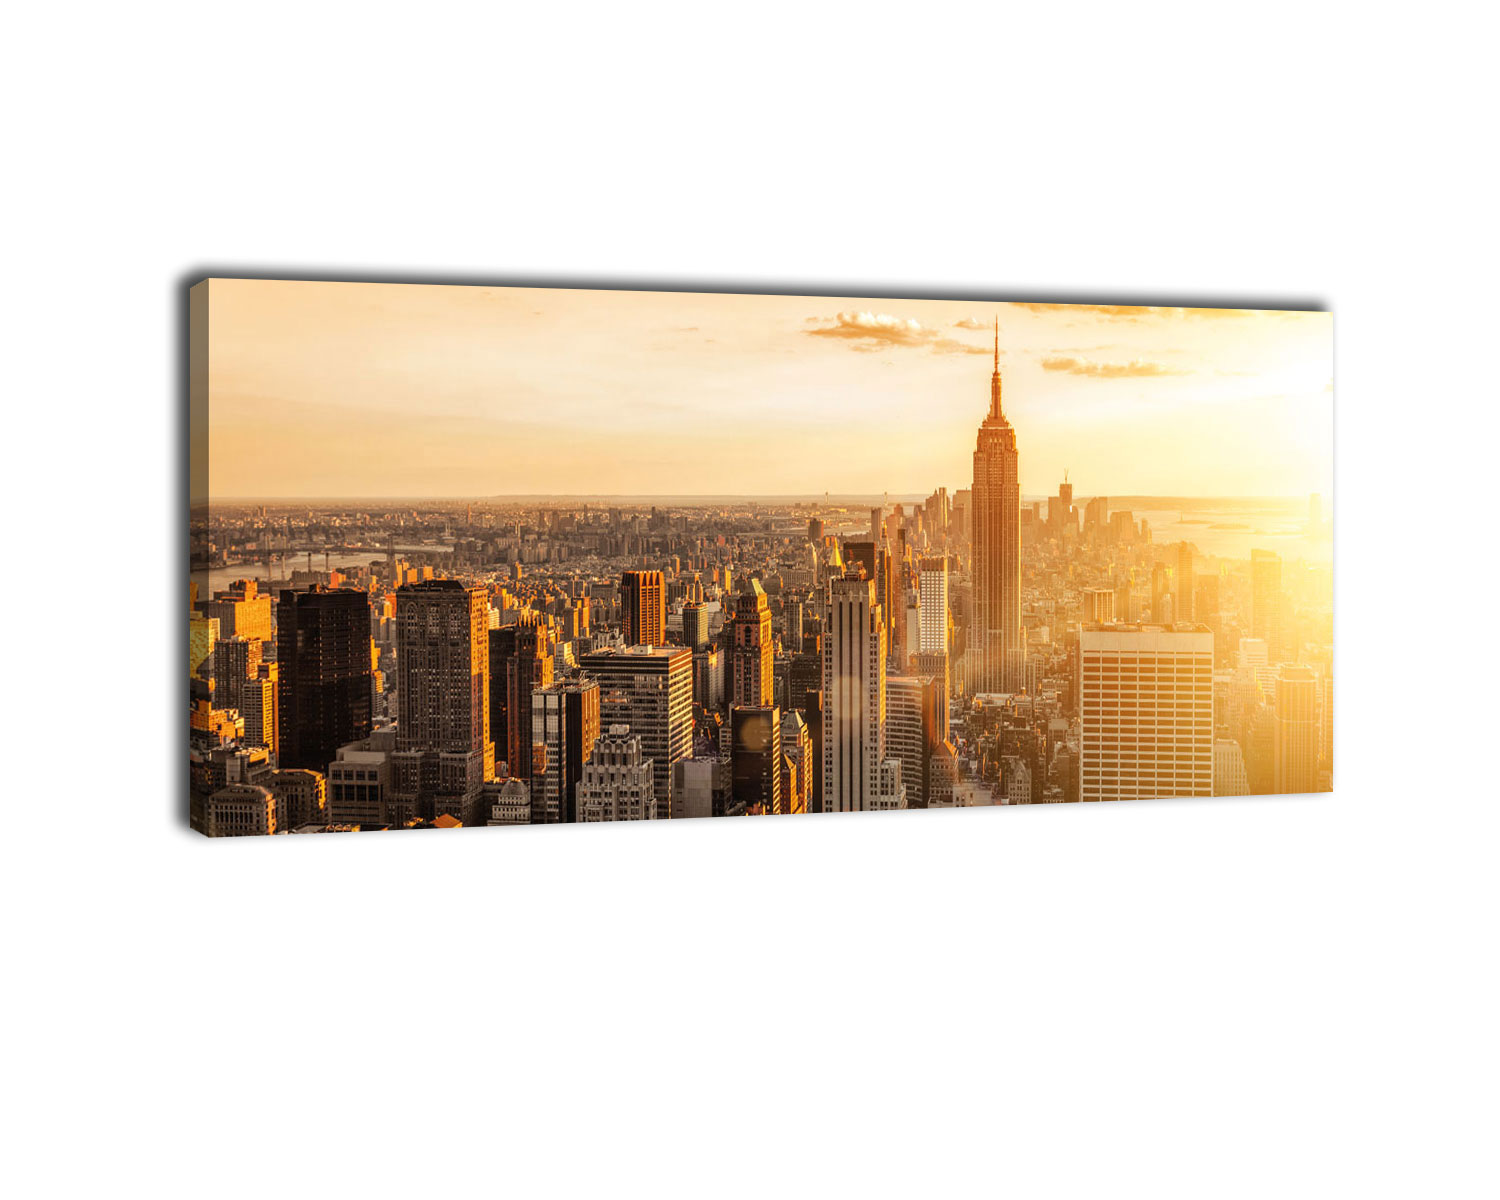 wandmotiv24 leinwandbild new york big apple manhattan amerika panorama 100cm x 40cm. Black Bedroom Furniture Sets. Home Design Ideas